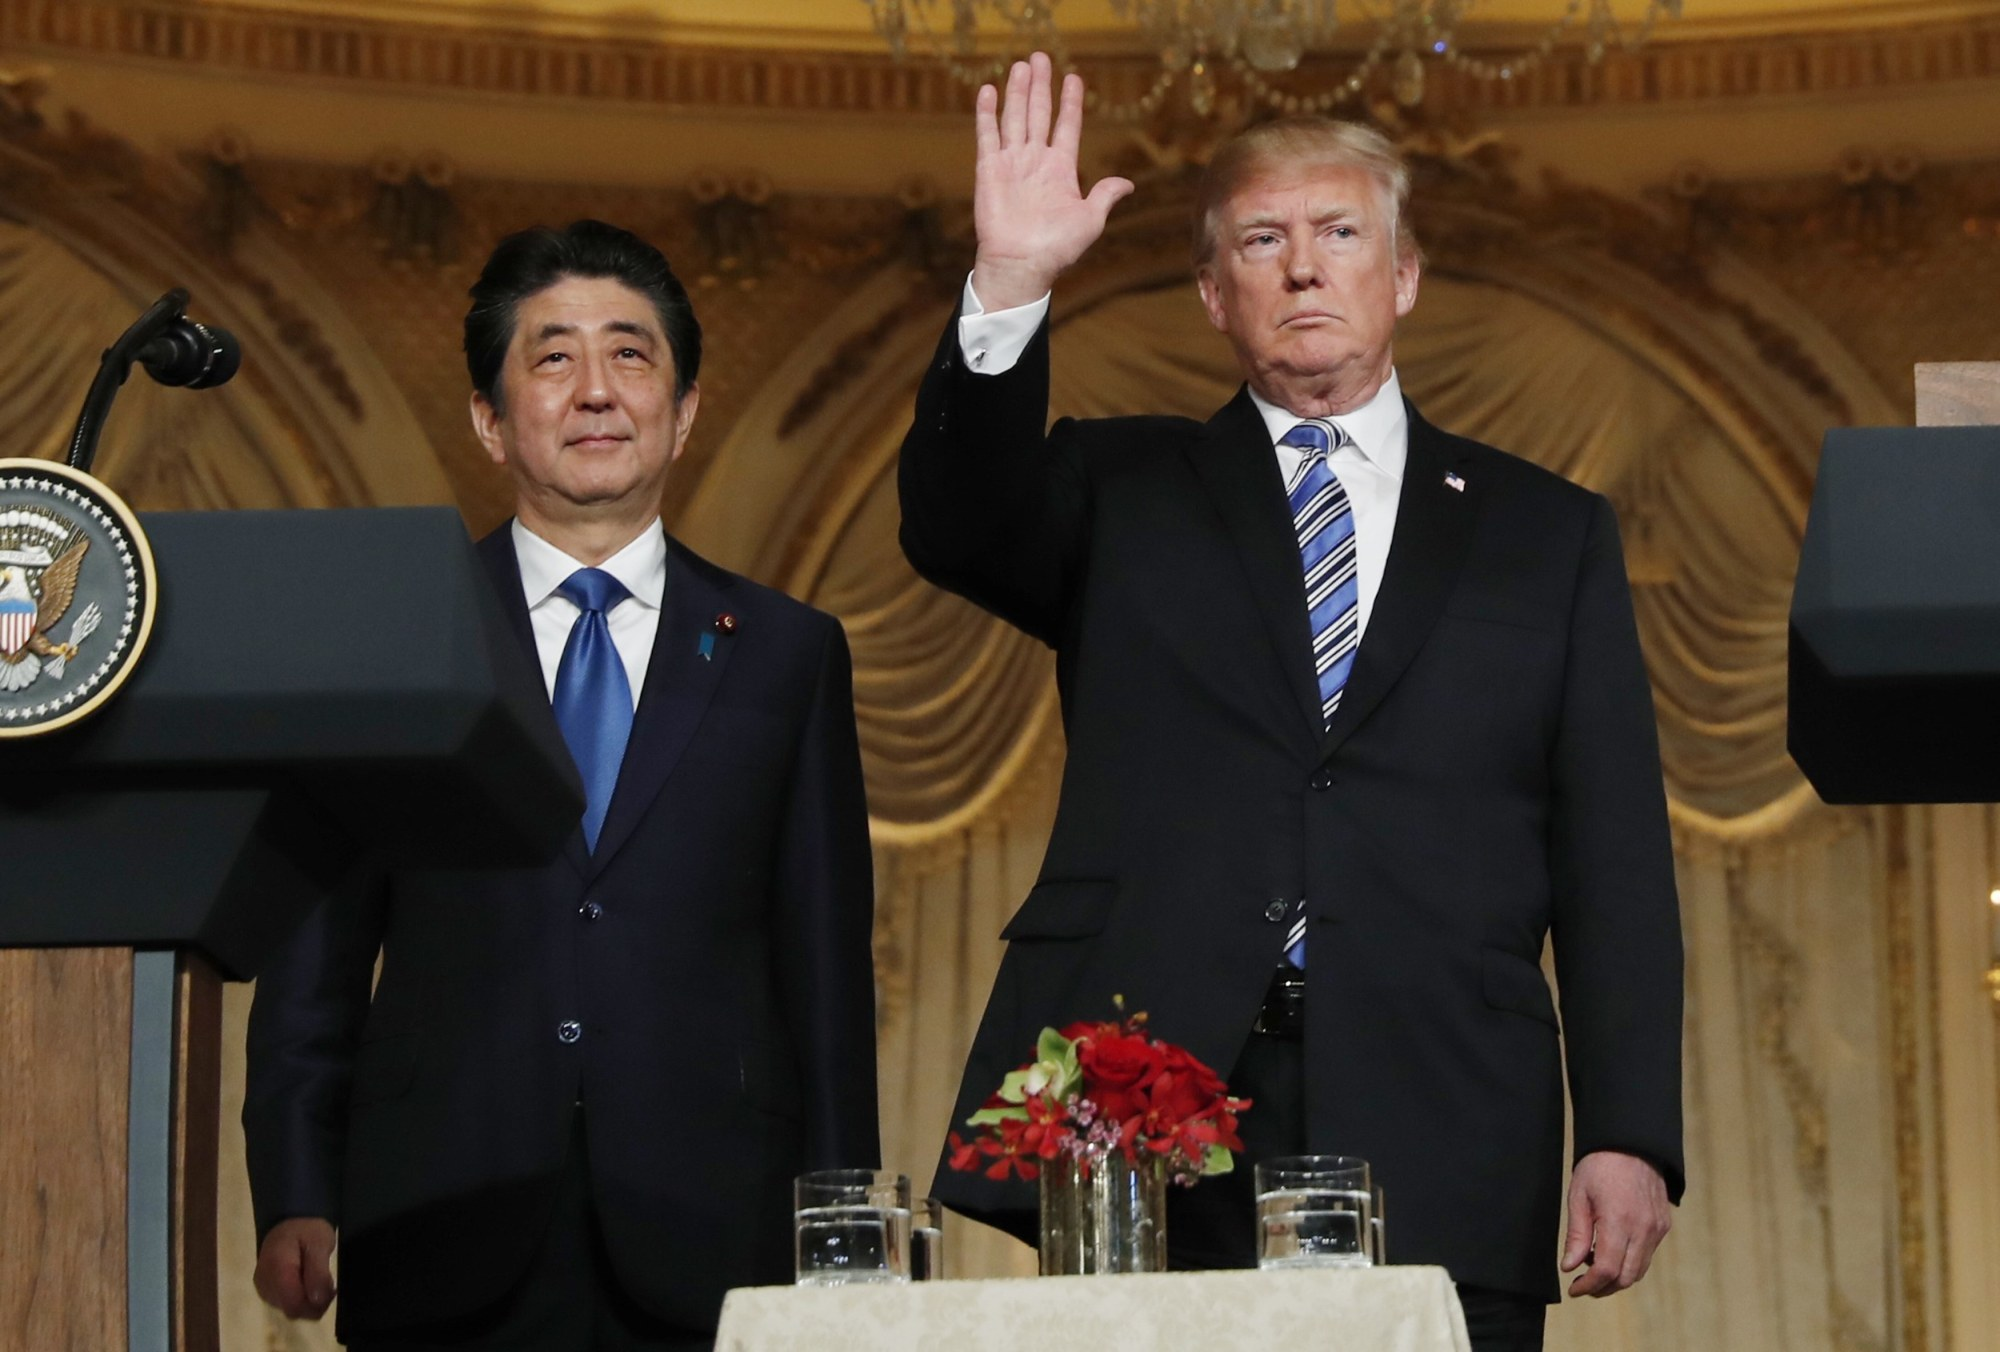 U.S. President Donald Trump waves at the conclusion of a joint news conference with Prime Minister Shinzo Abe at Trump's Mar-a-Lago estate in Palm Beach, Florida, on Wednesday. | REUTERS